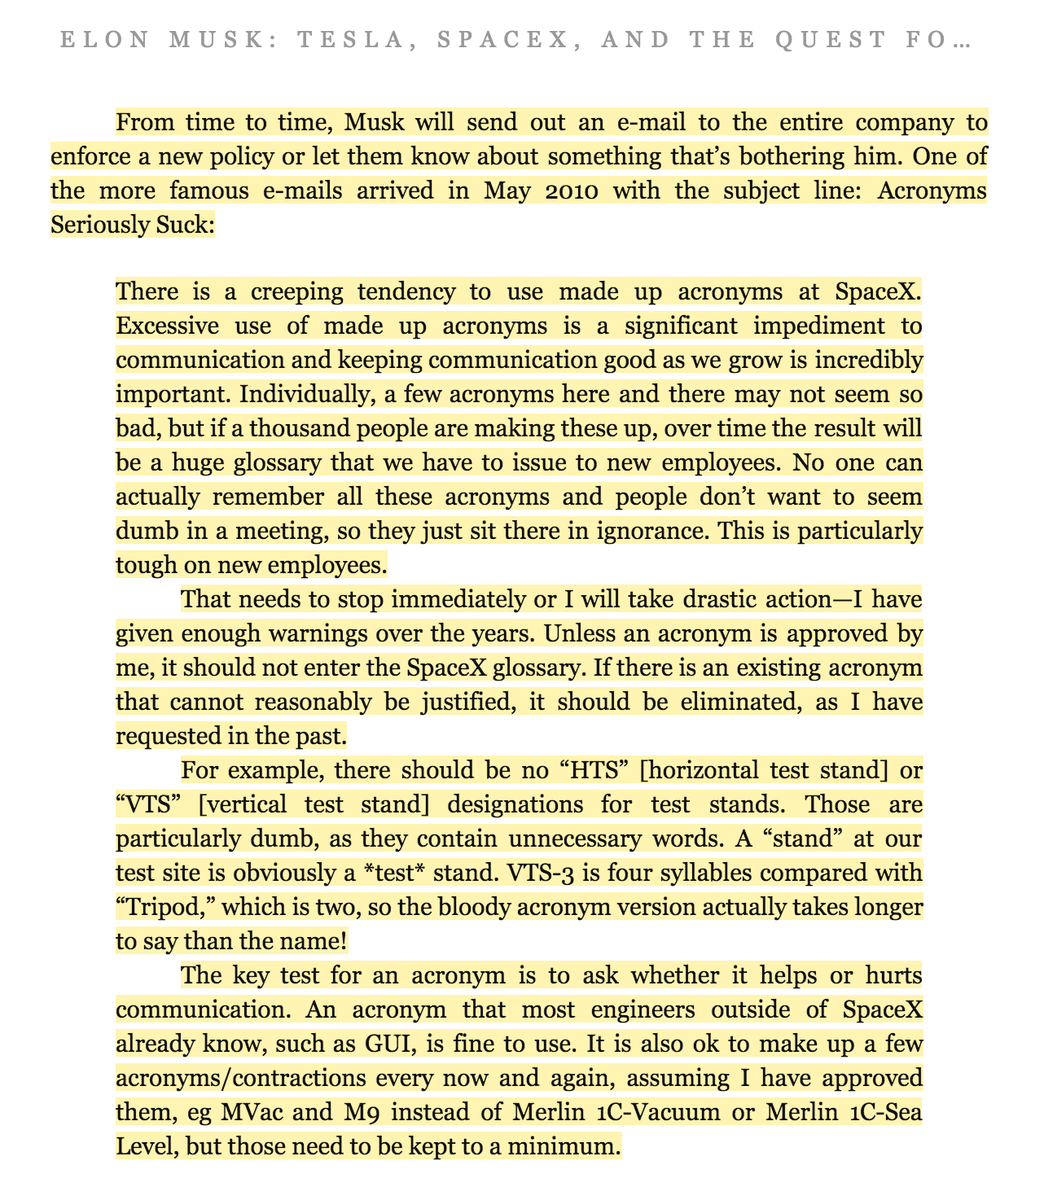 .@elonmusk on the spread of unnecessary acronyms inside SpaceX http://t.co/C9H7OdKVlb